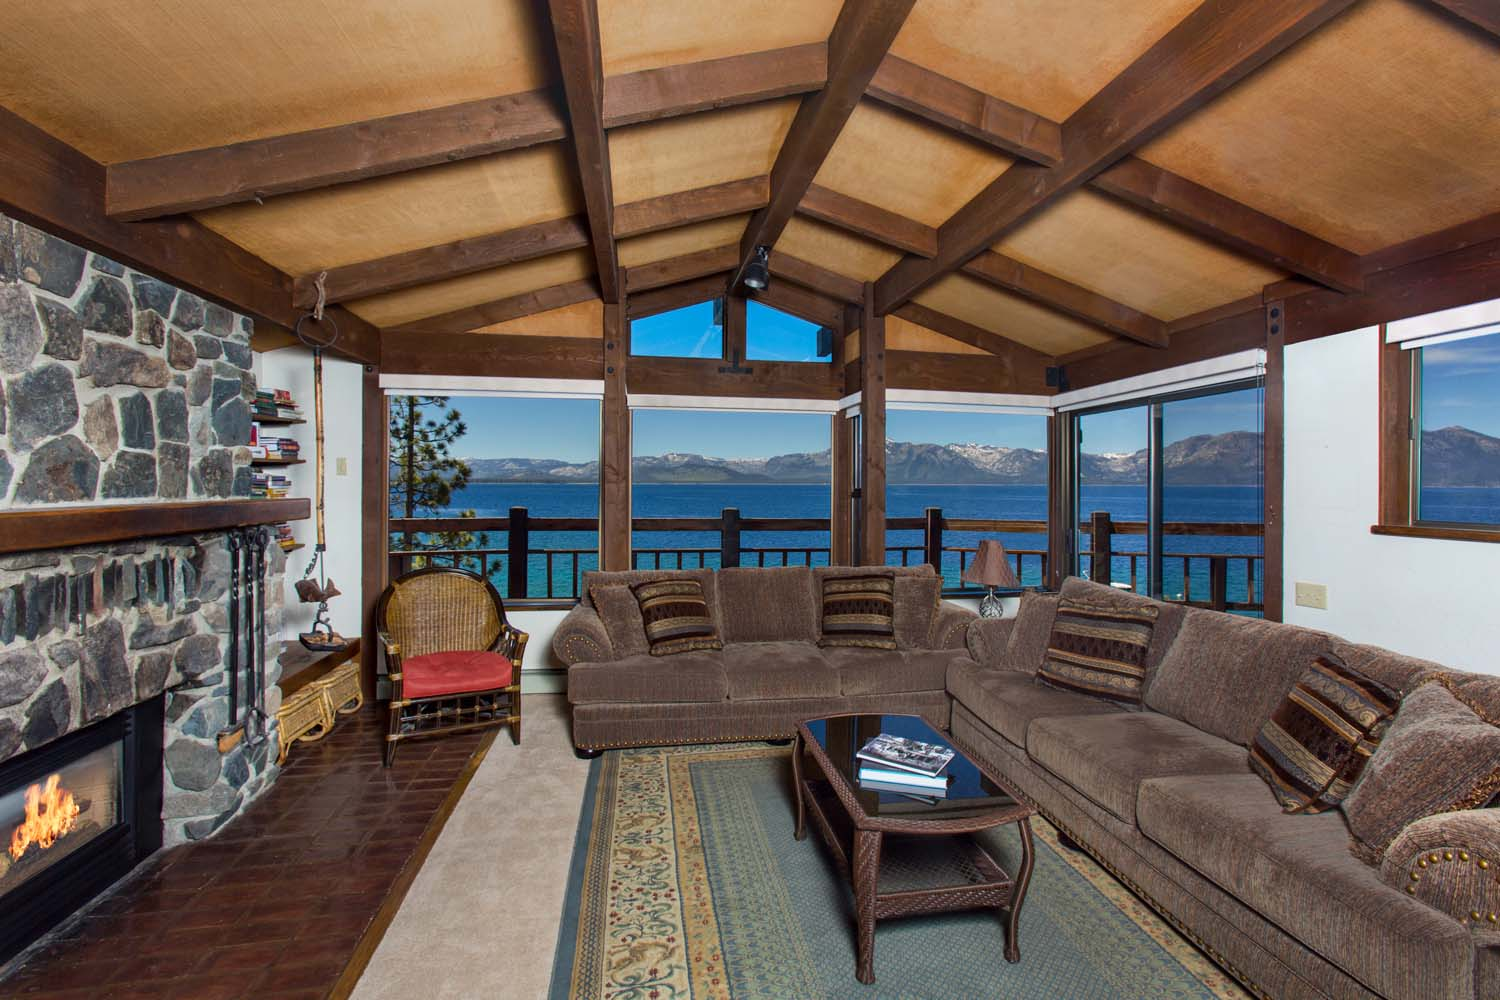 3 Rooms, Homes, For sale, Lake Shore Blvd, 3 Bathrooms, Listing ID 1002, Zephyr Cove, Nevada, United States, 89448,